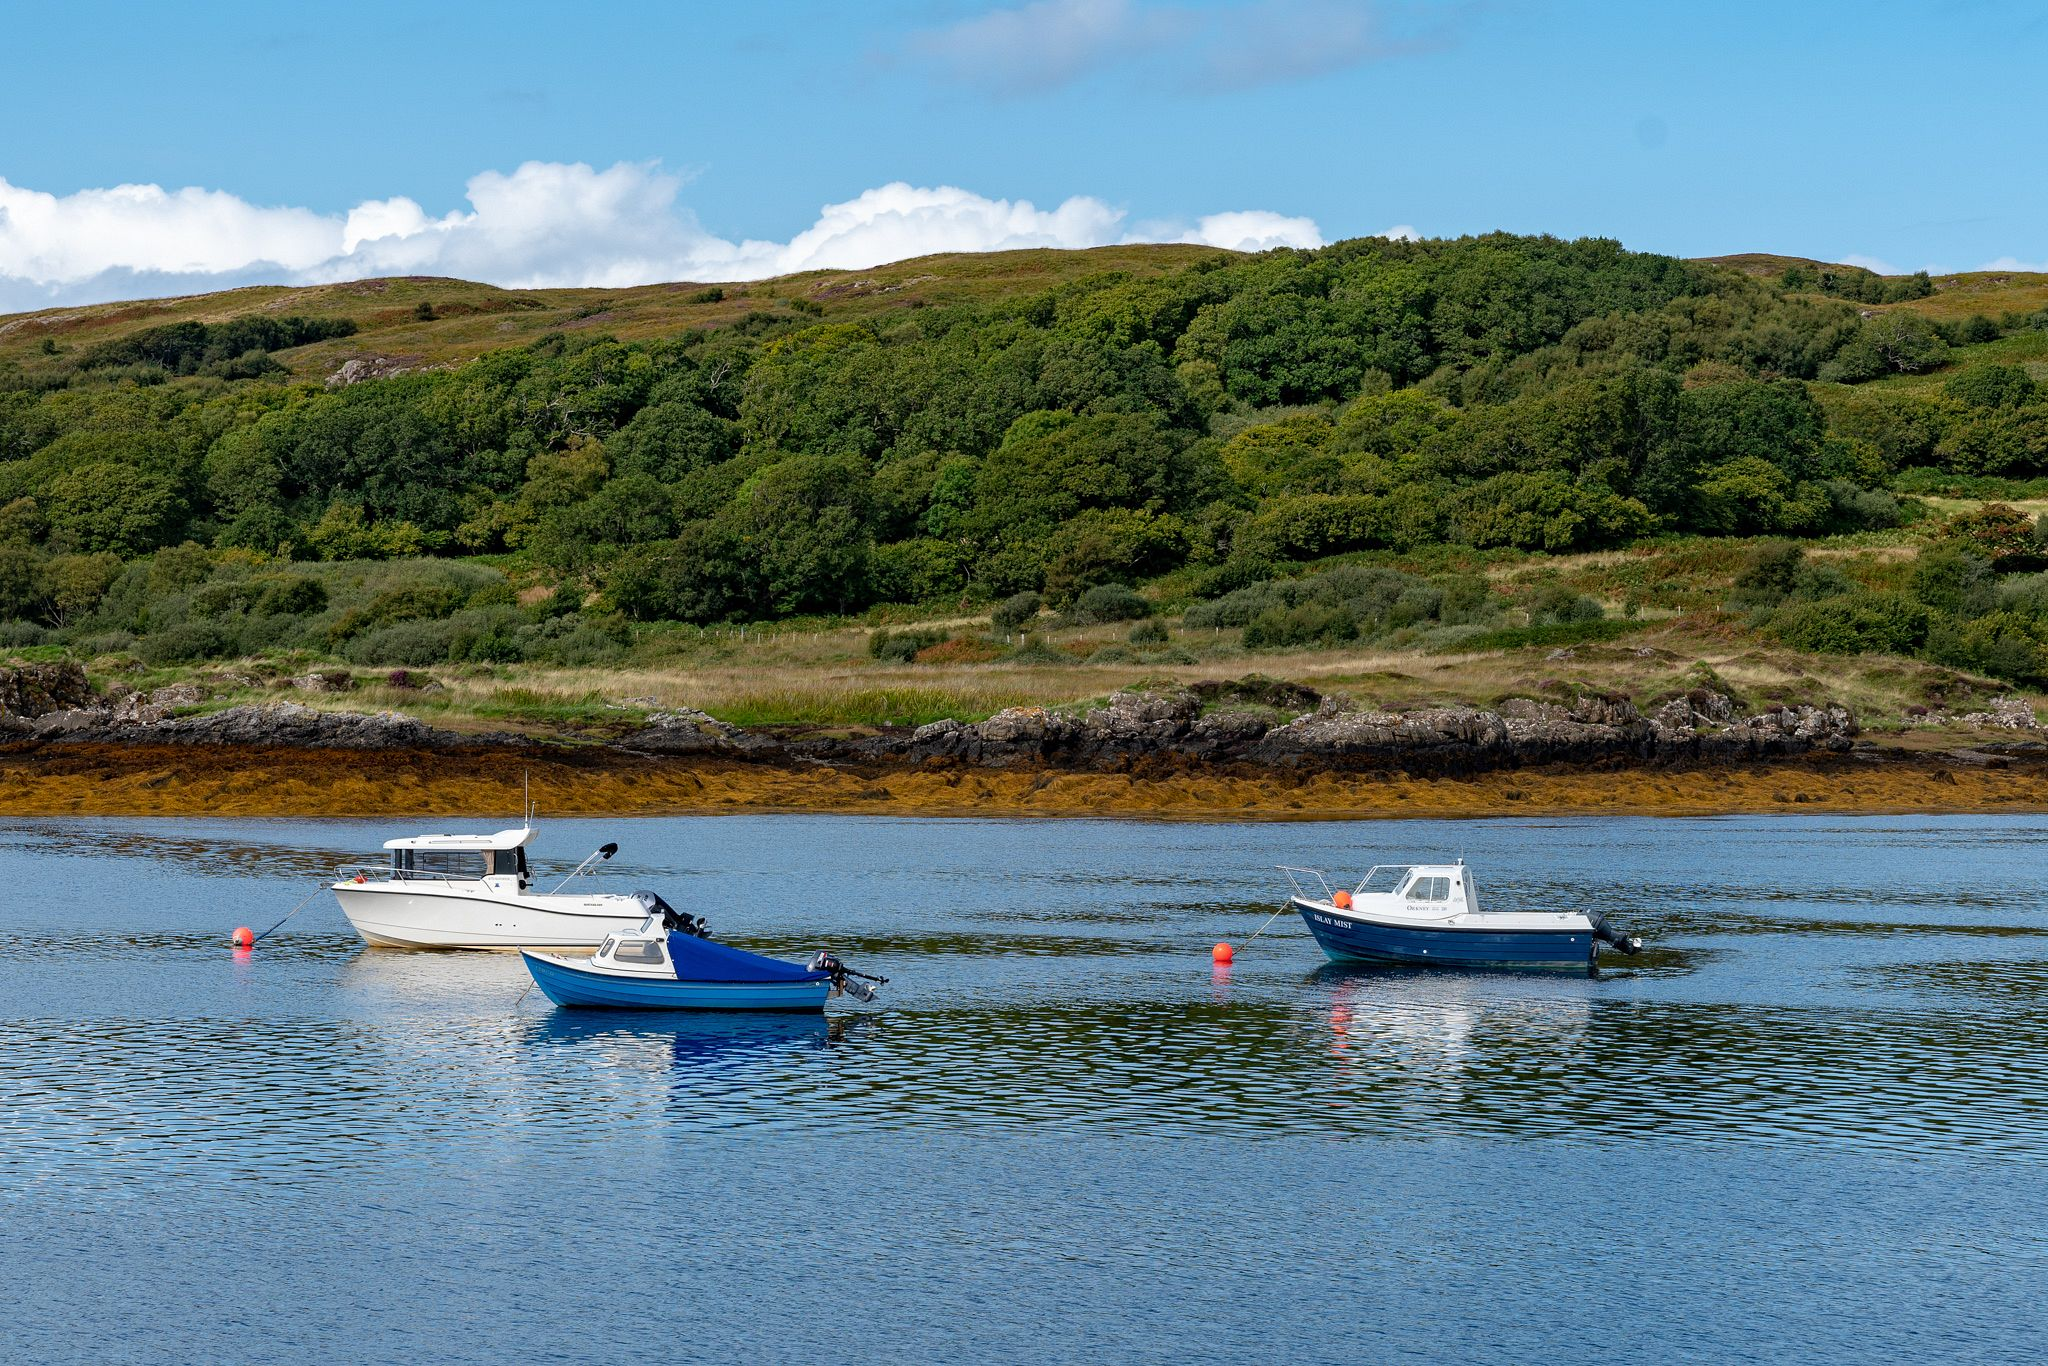 Boats at Arisaig